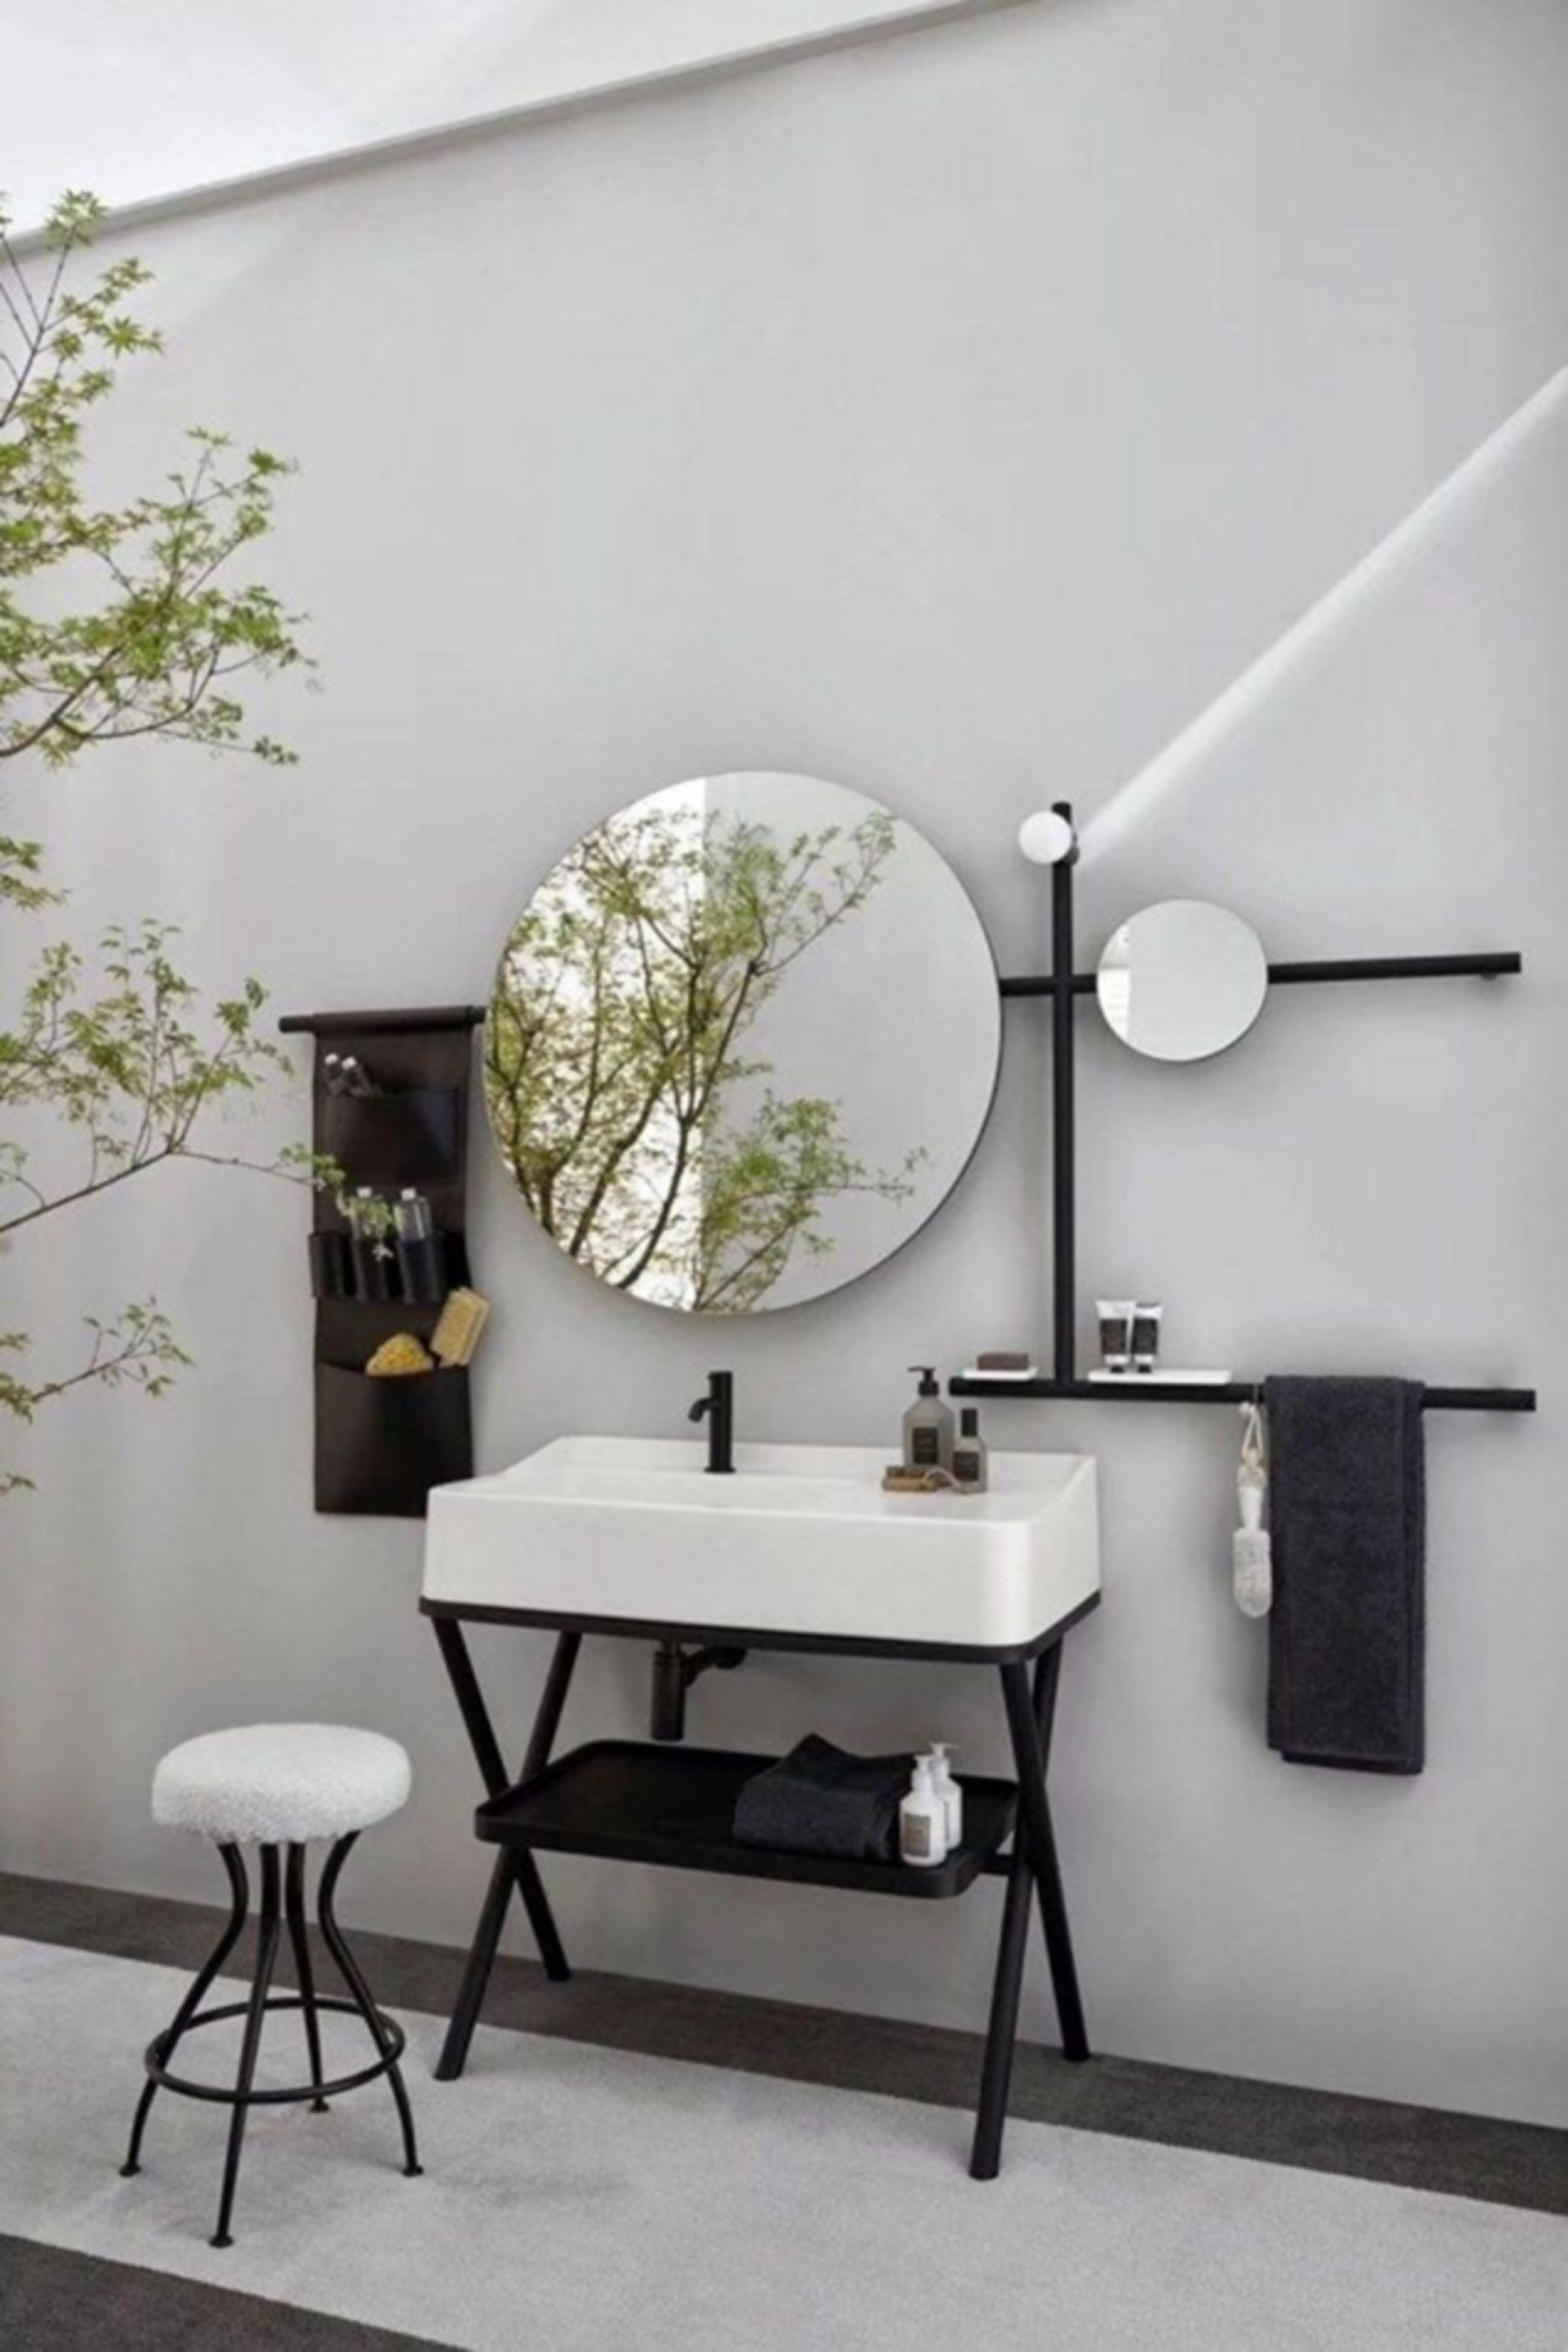 10 Awesome Industrial Bathroom Design Ideas To Make Your Bathroom Modern Industrial Bathroom Design Washbasin Design Bathroom Design